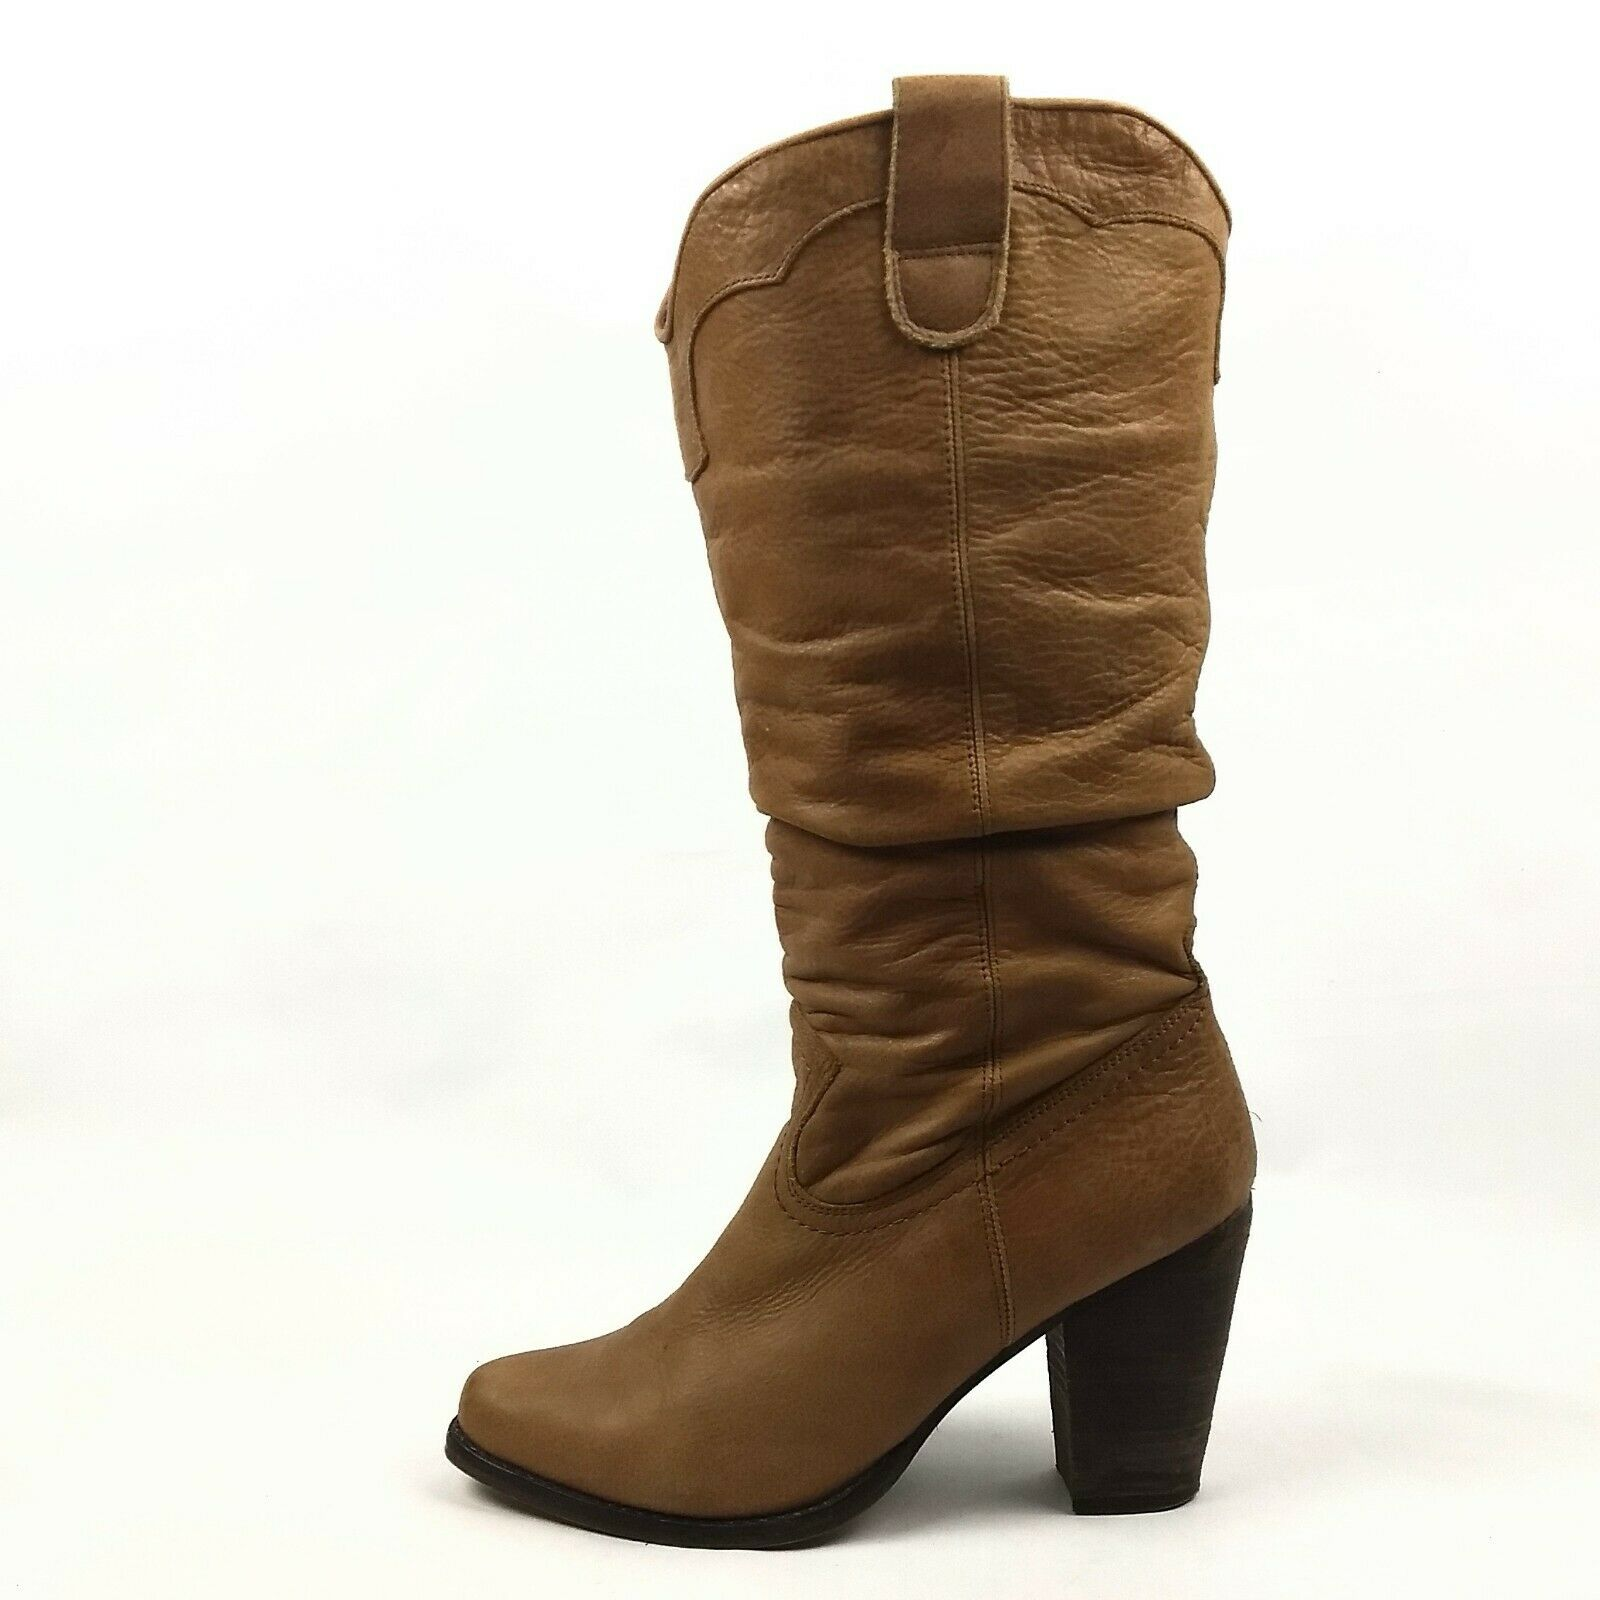 Steve Madden Gesar Slouch Boots Womens Size 8.5 Cognac Tan Leather High Heel Z24